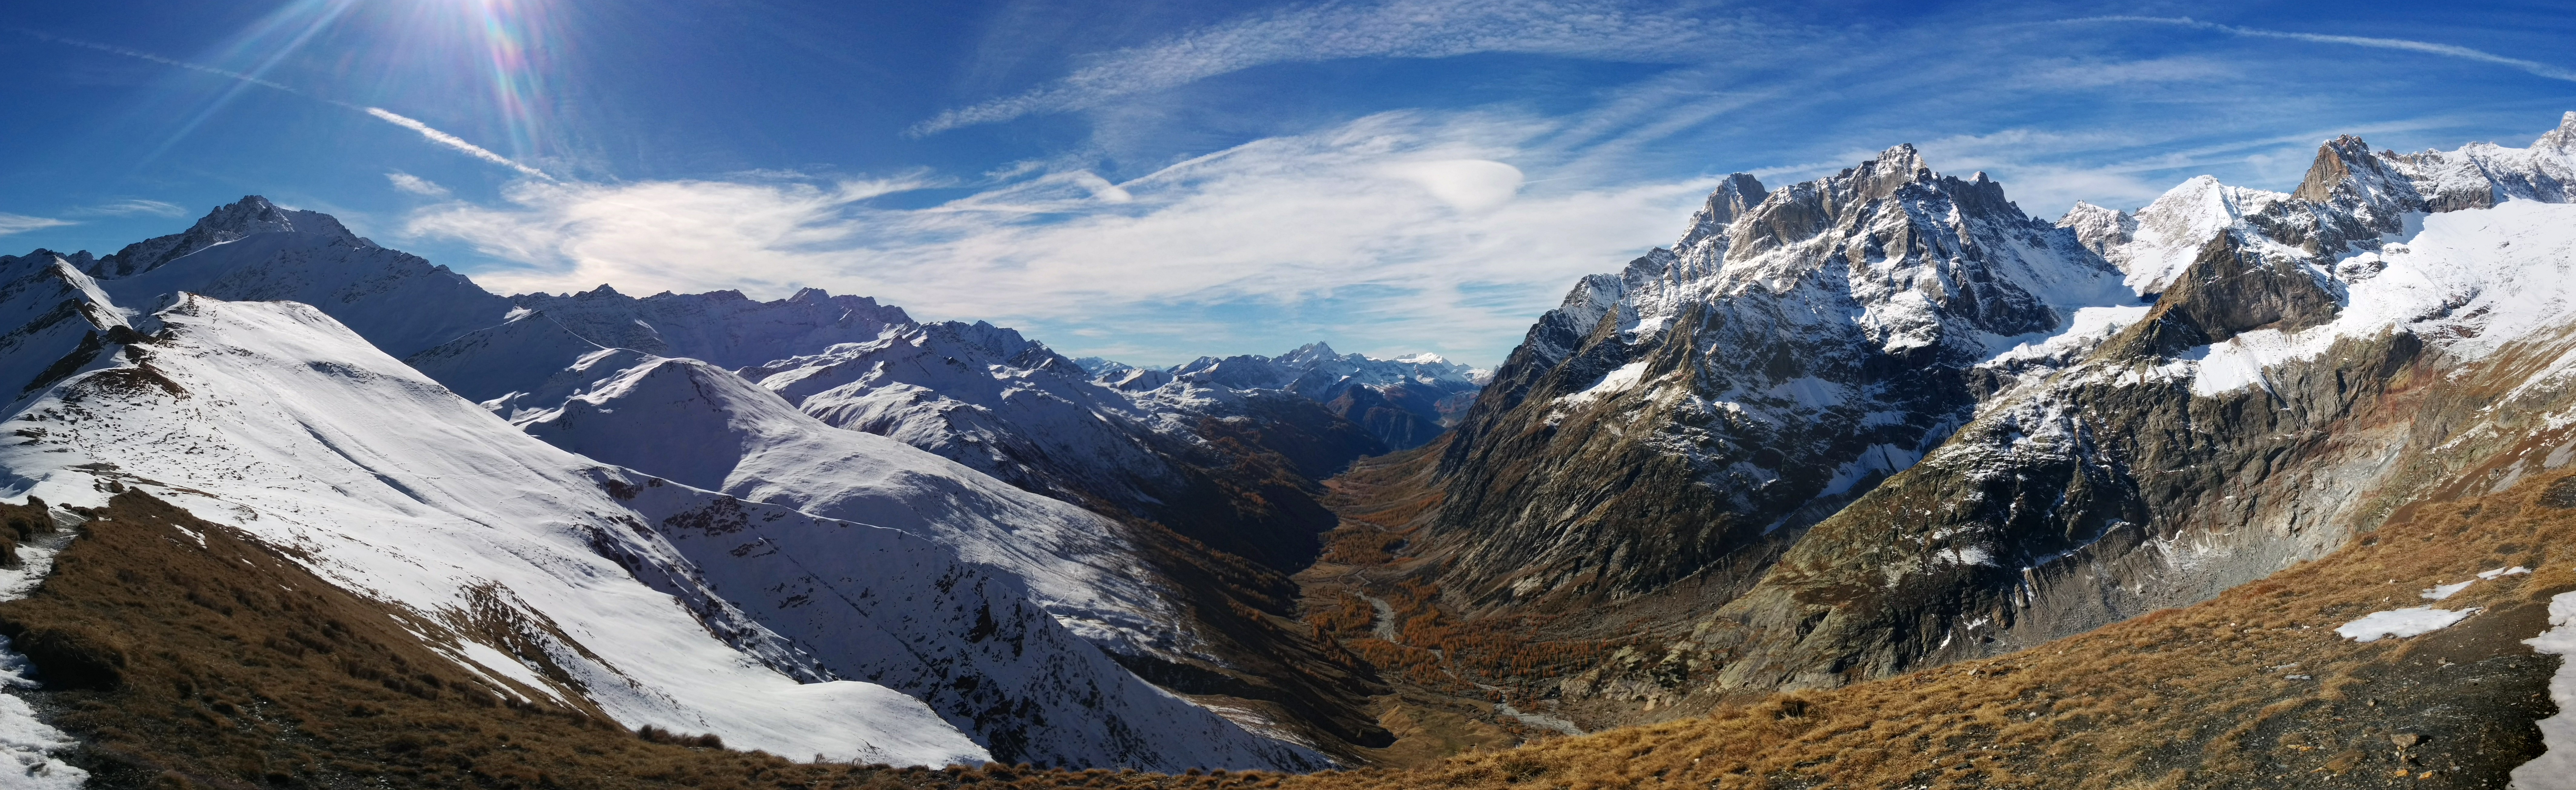 Looking southwest from the Col Val Ferret into Italy